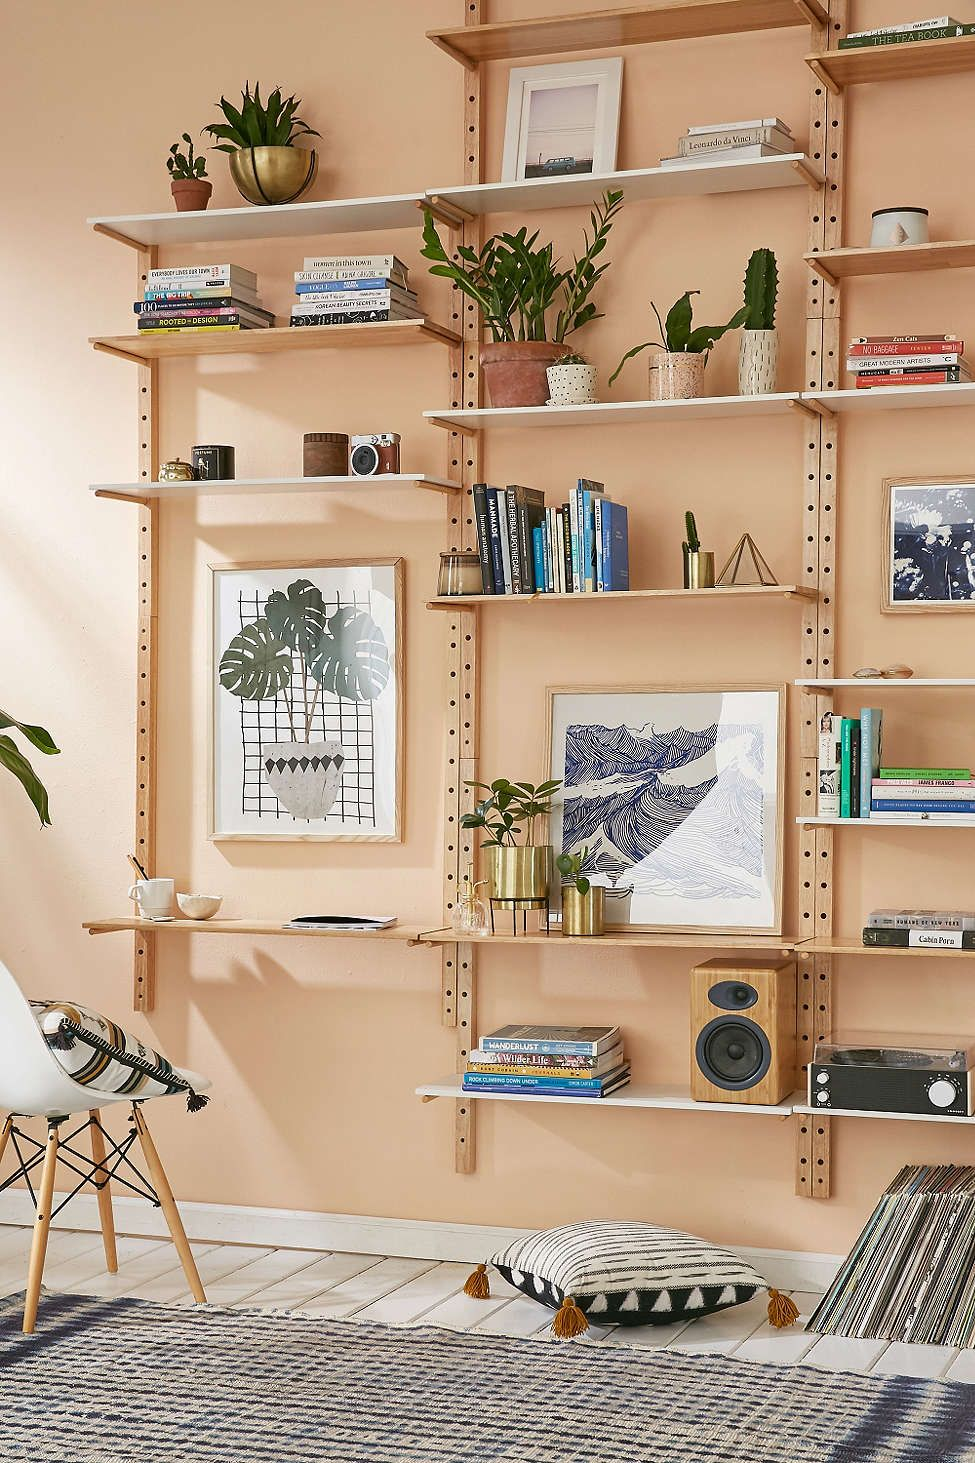 Brisbane Wood Storage System Wall Shelving Units Unique Wall Shelves Tropical Home Decor